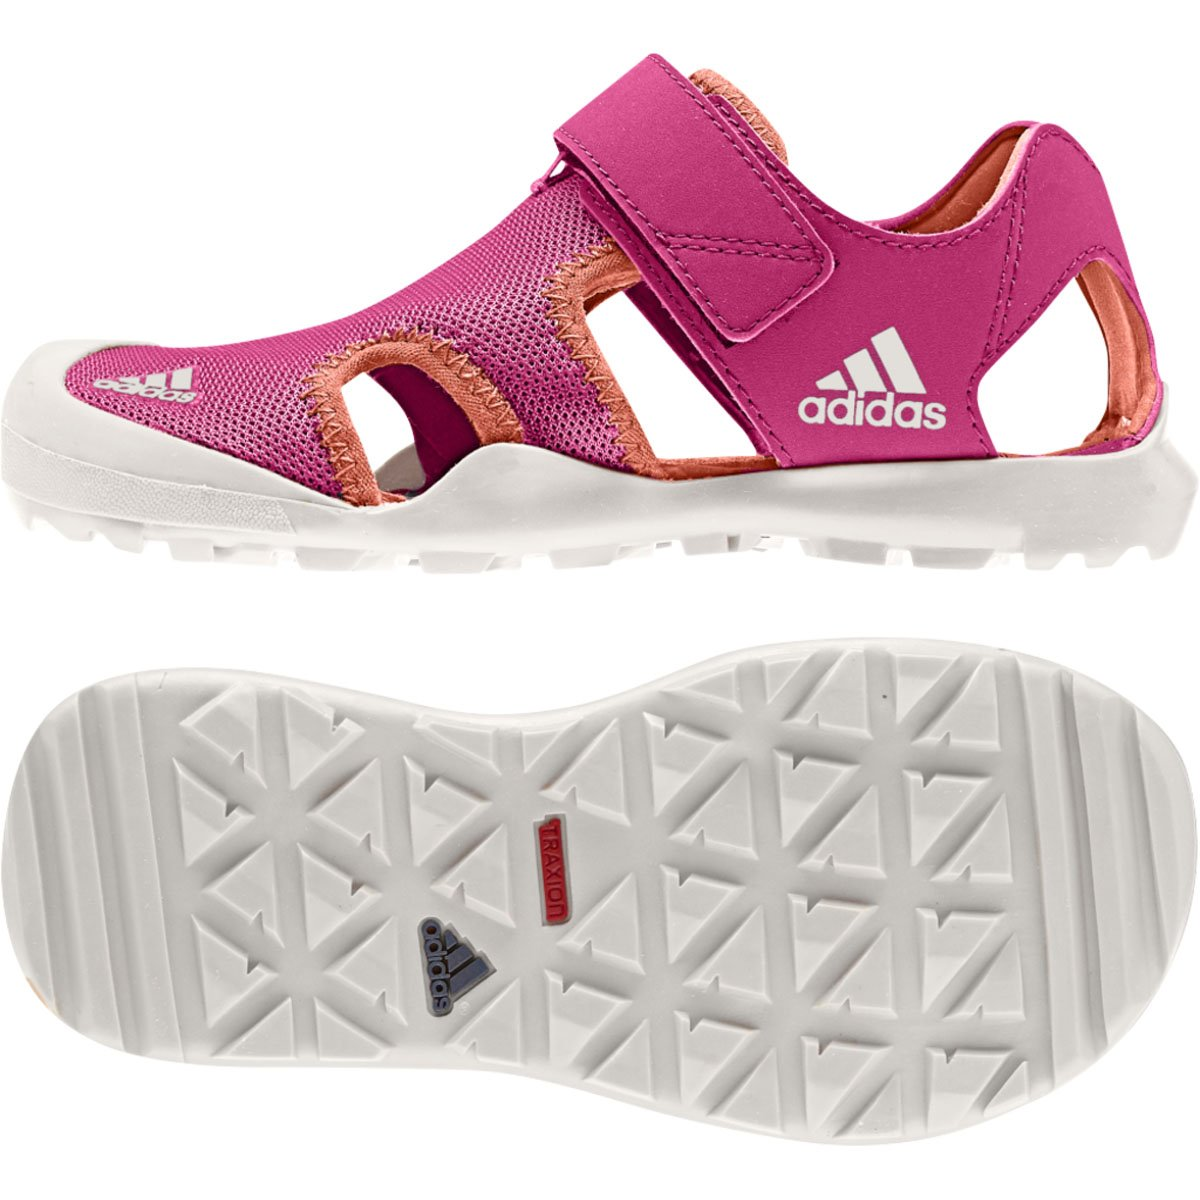 san francisco 70a31 7a264 Amazon.com adidas Outdoor Kids Baby Girls Captain Toey (ToddlerLittle  KidBig Kid) Bold PinkSun GlowChalk White Sandal Shoes